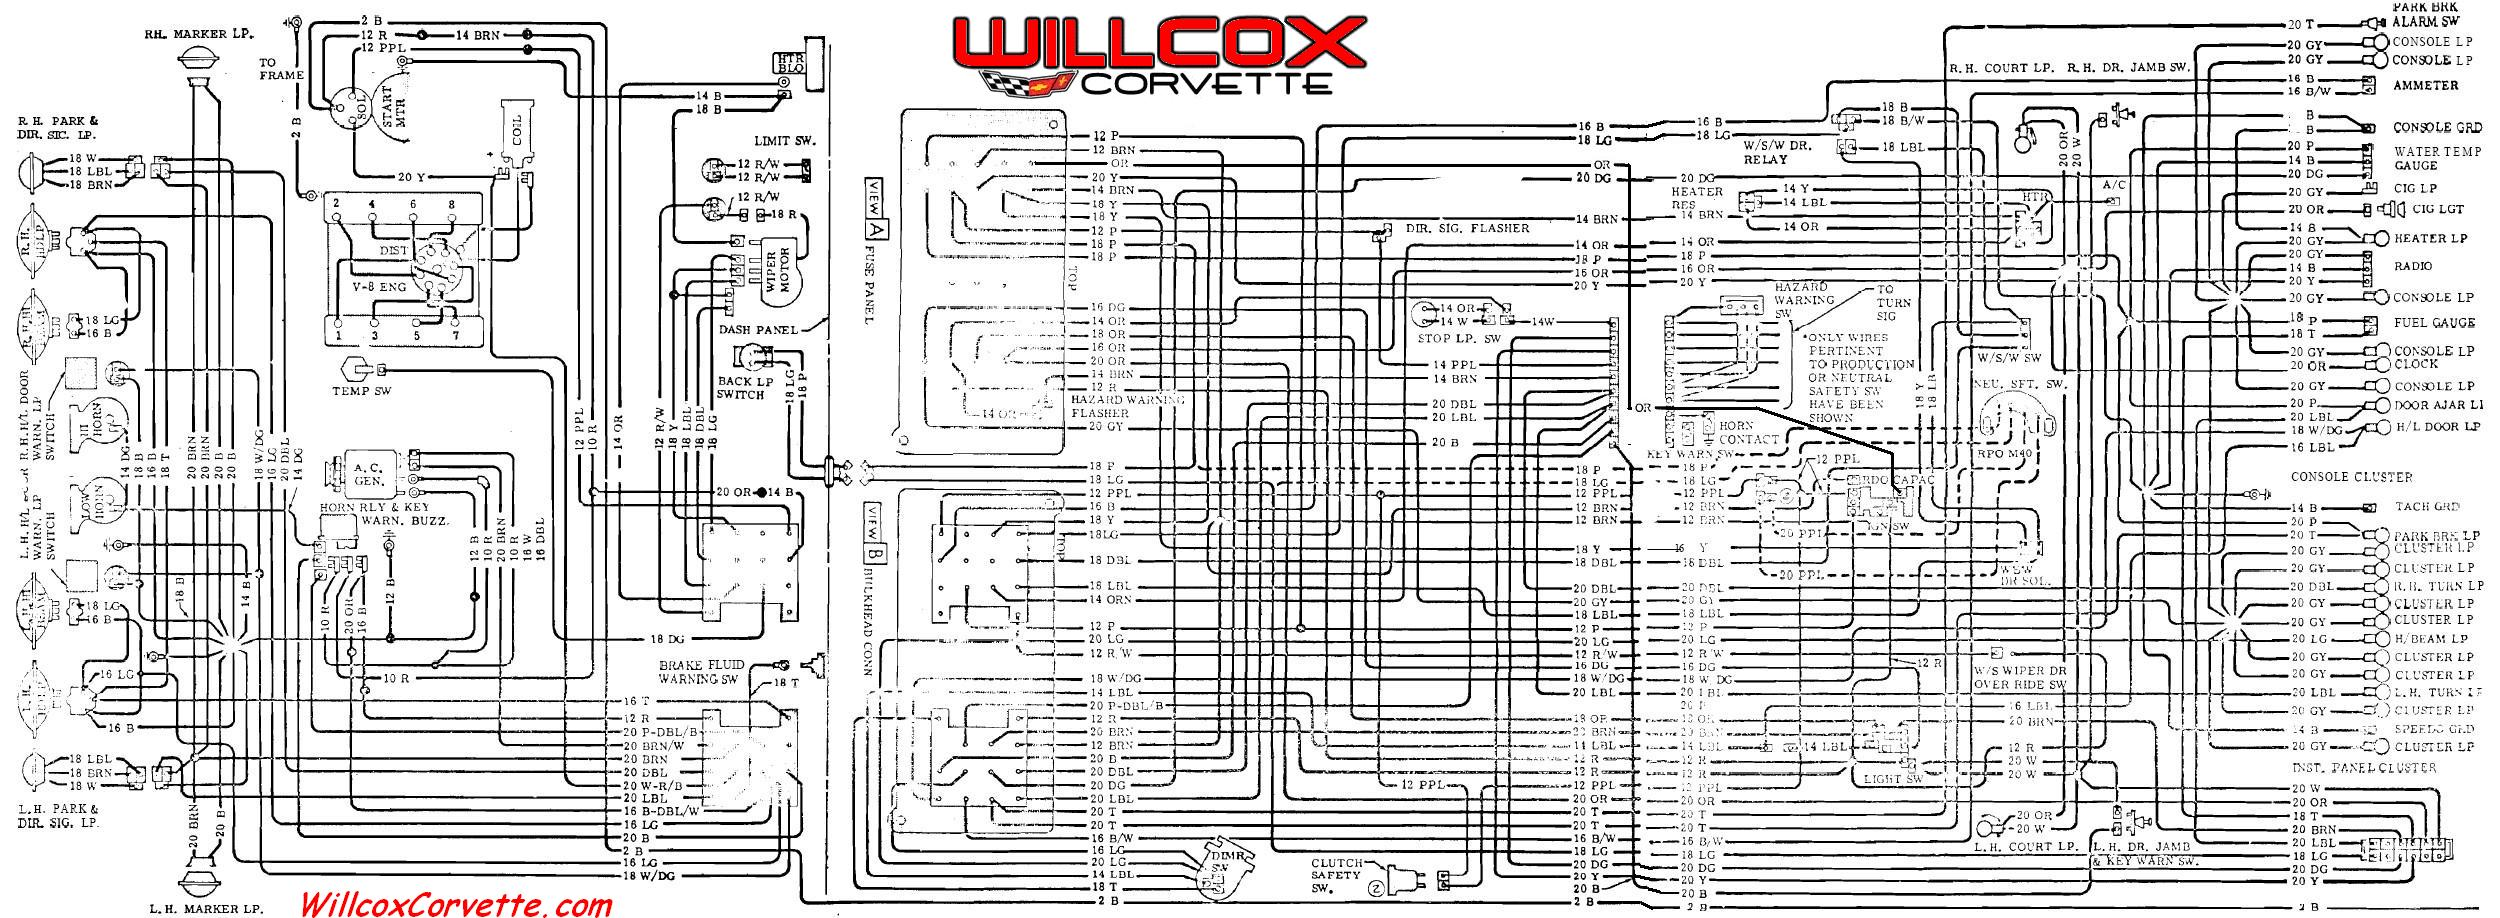 corvette fuse box diagram corvette wiring diagram corvette wiring diagrams online